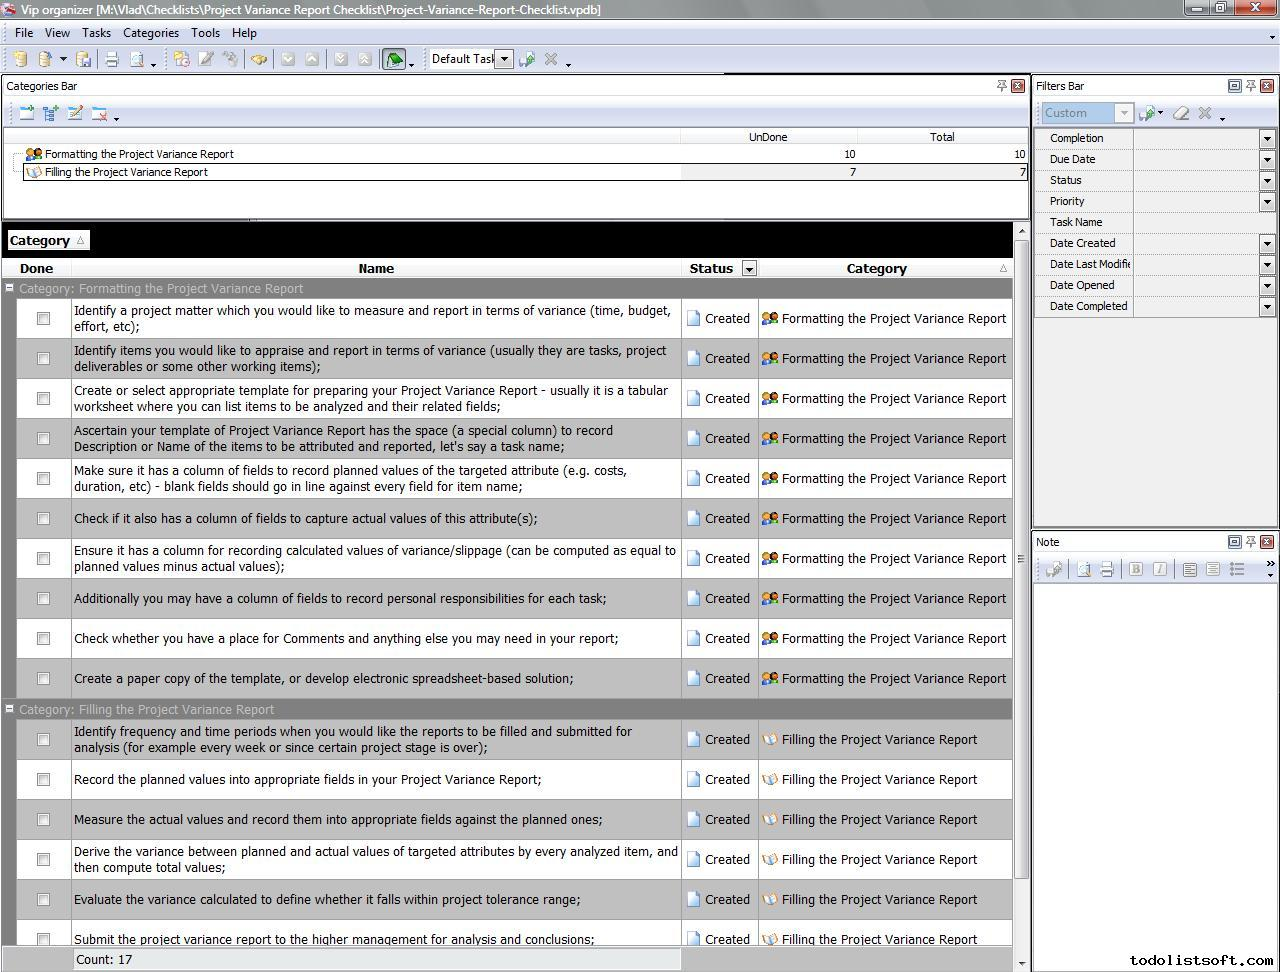 Project Variance Report Checklist